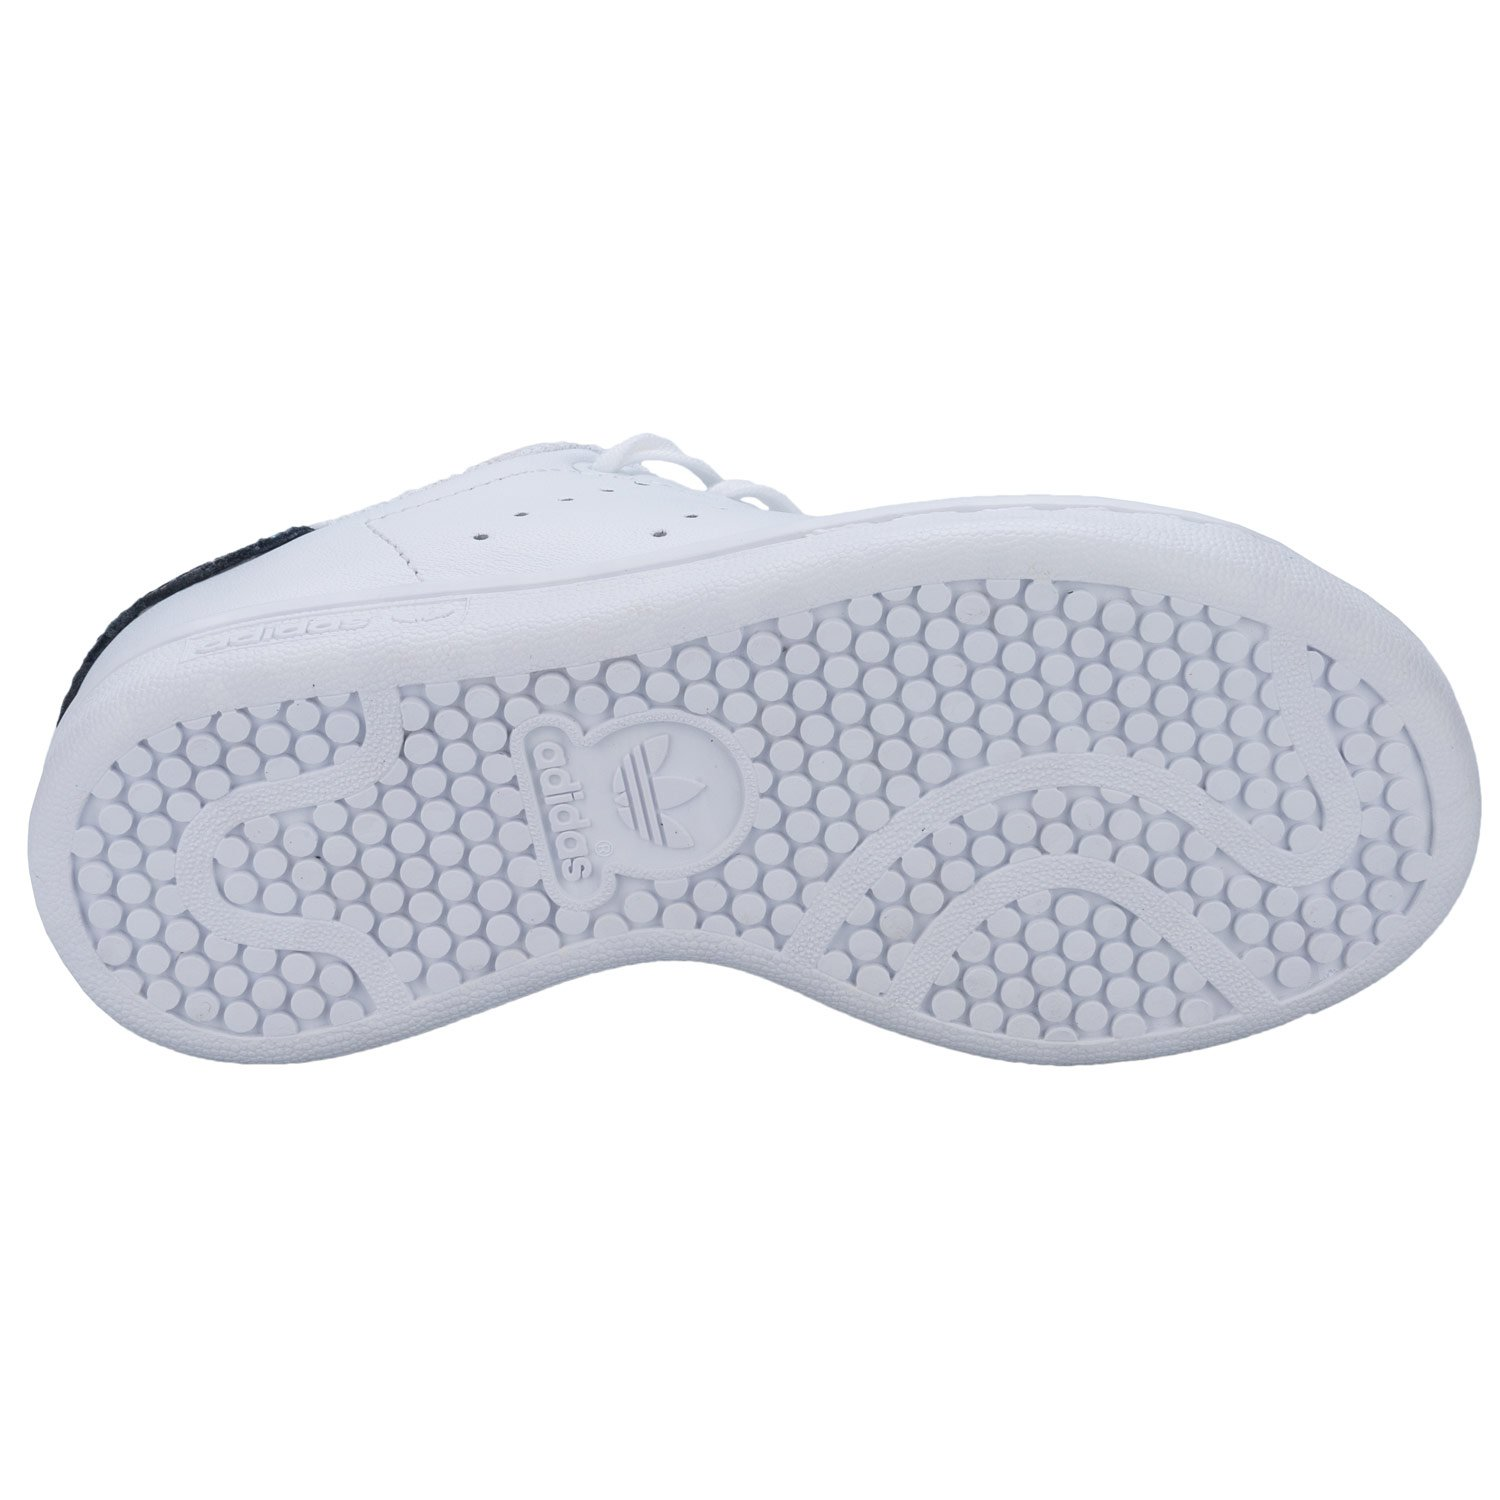 f425b39ab19f adidas Girls Originals Stan Smith Snake Trainers White-Lace  Fastening-Metallic  Amazon.co.uk  Shoes   Bags